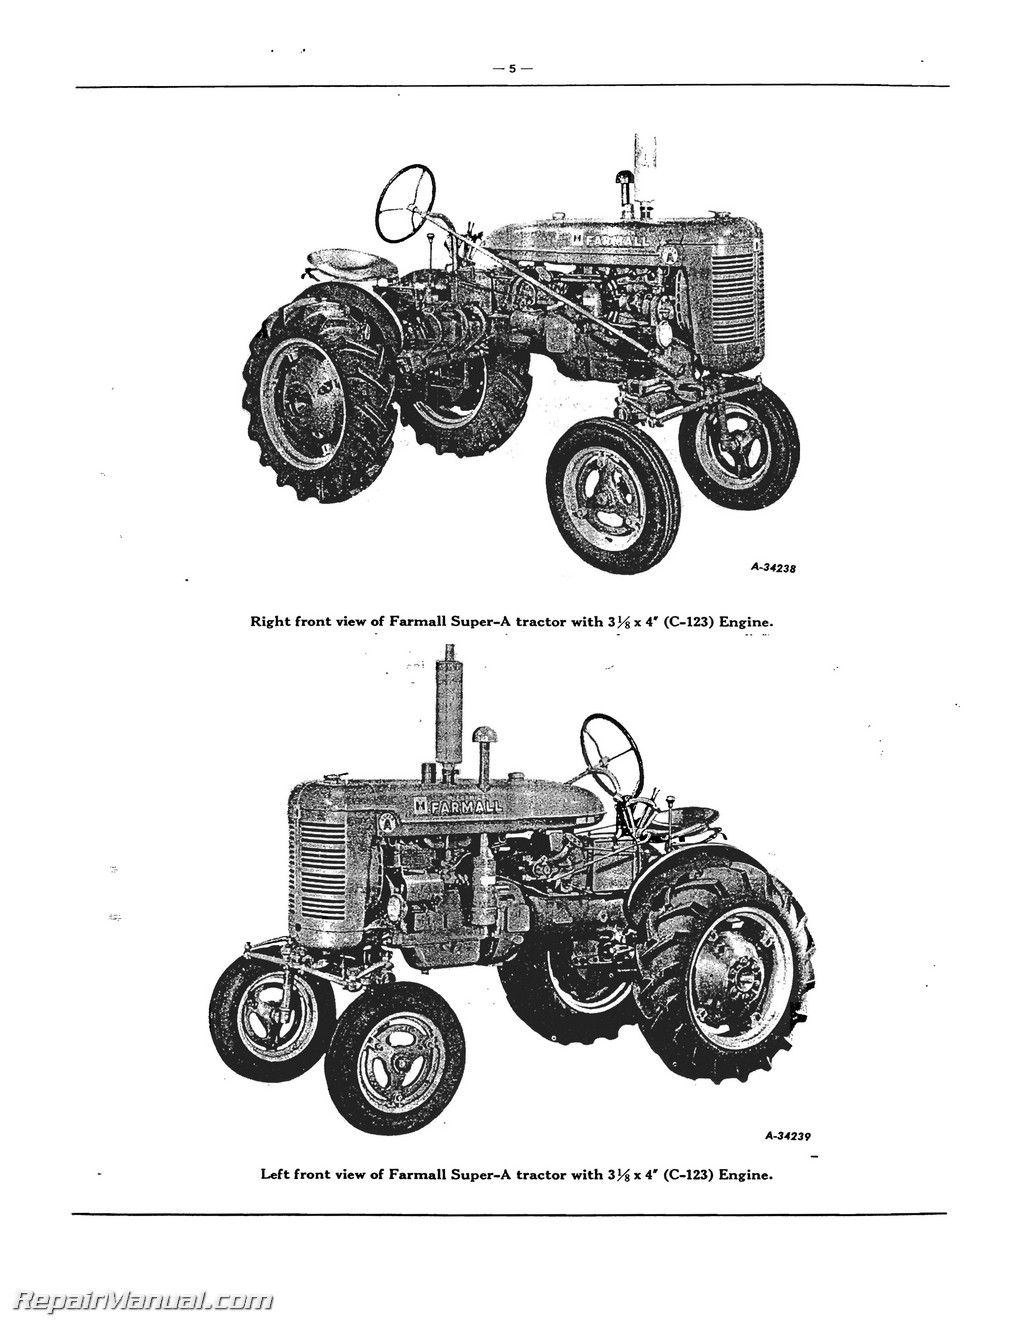 Farmall Super A Av A 1 Av 1 Tractor Parts Manual Yanmar Tractor Diagram  Farmall Tractor Diagram